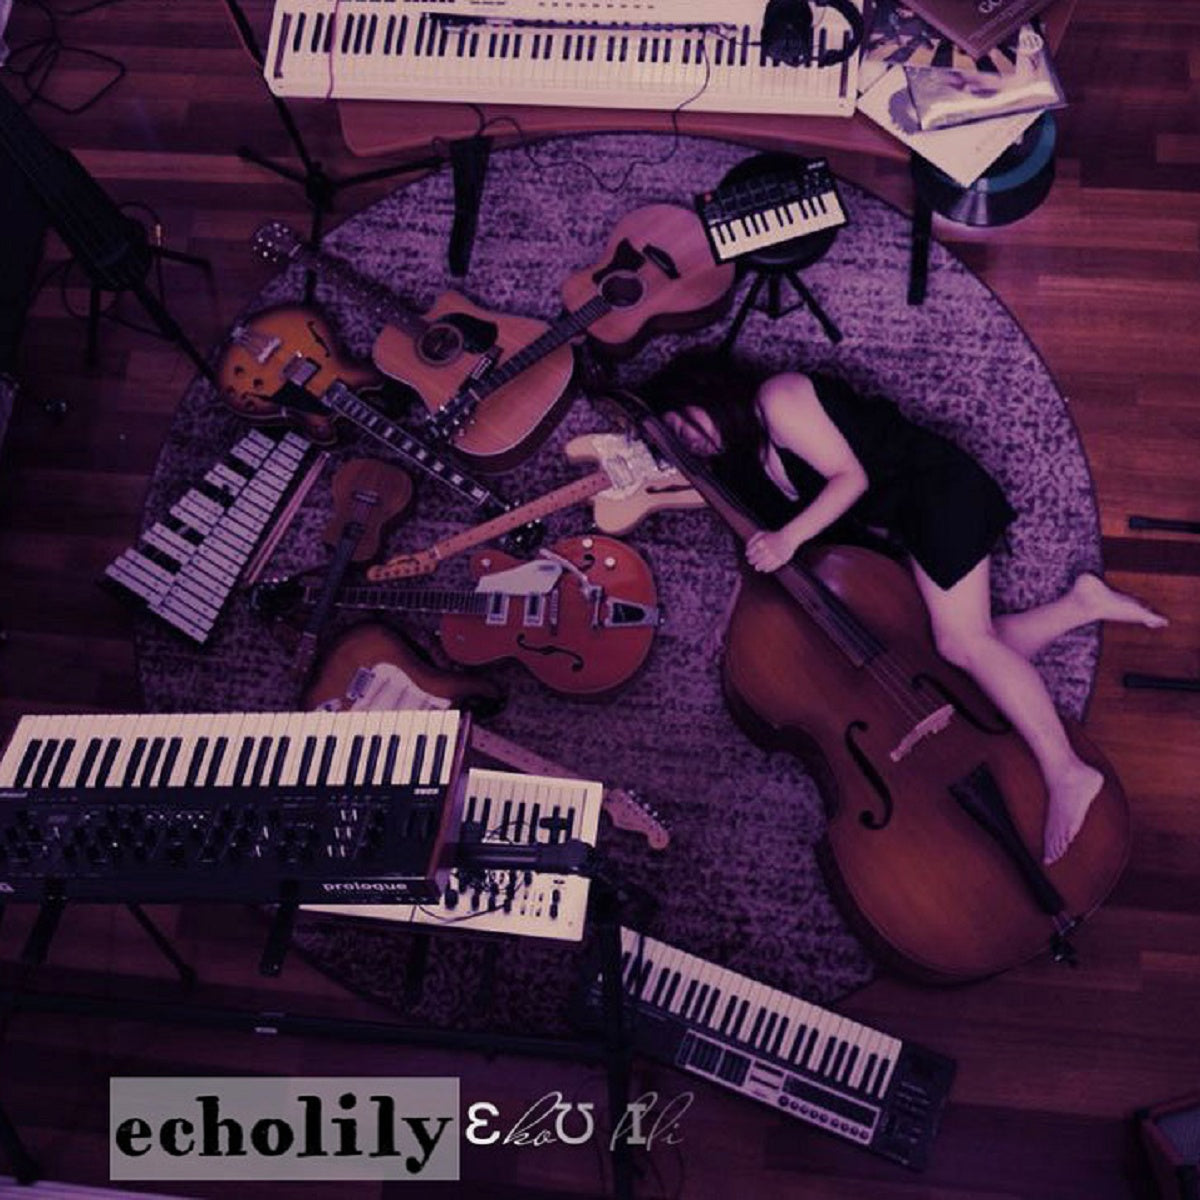 echolily – 'under the clocks (stay)'